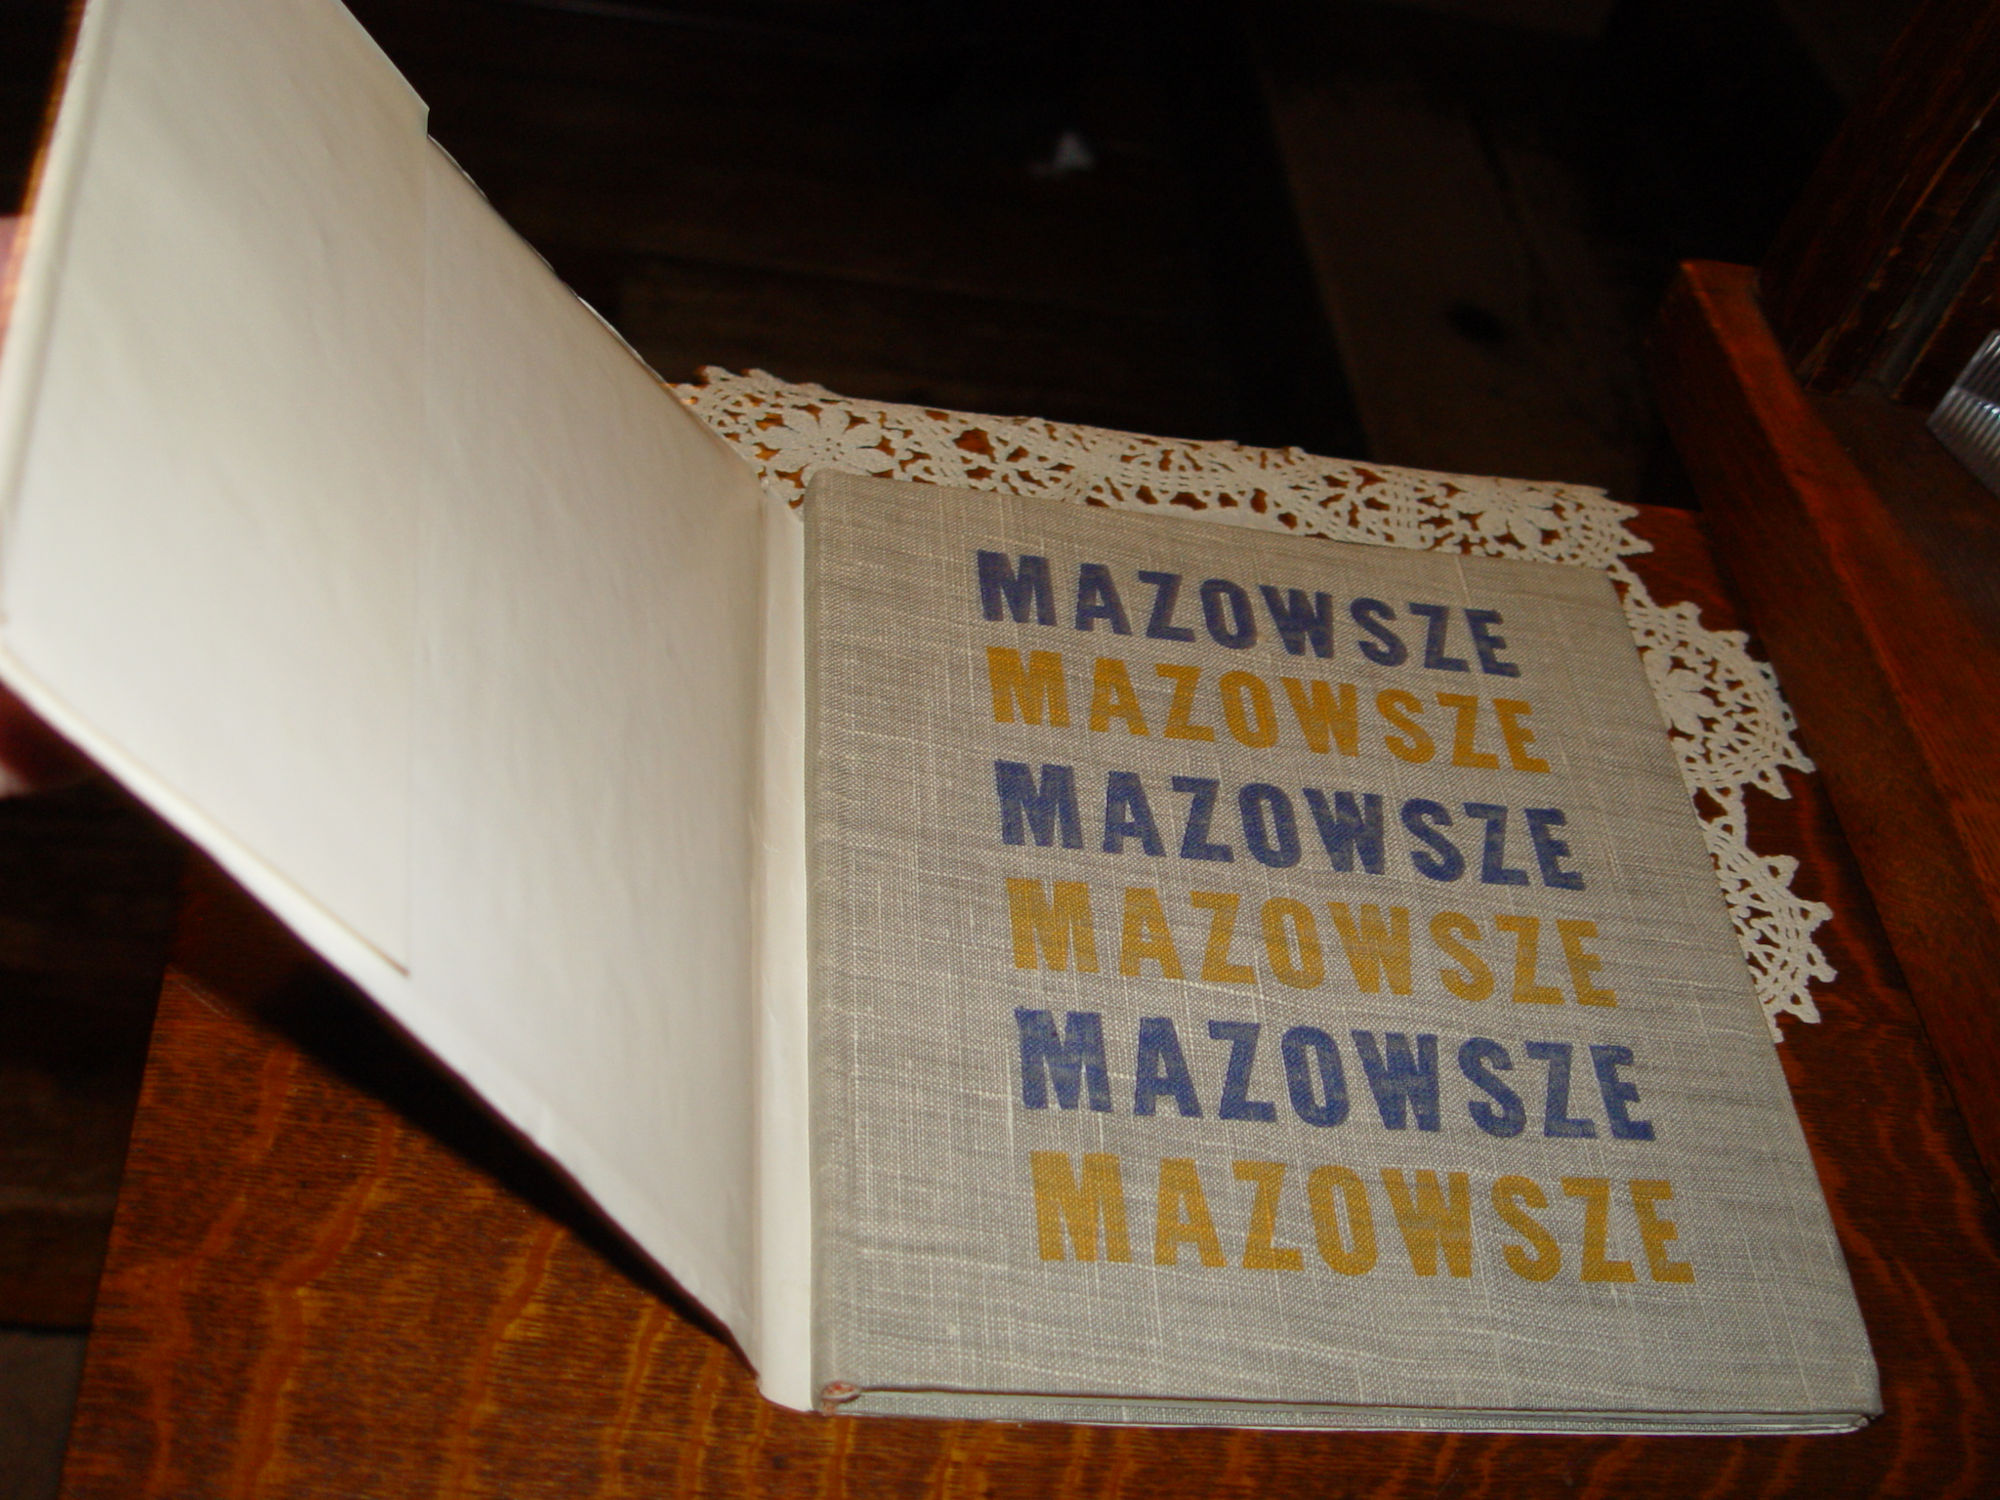 The Elements of Moral                                         Science by Wayland, Francis,                                         1796-1865. Boston, Gould,                                         Kendall, and Lincoln, 1837 4th                                         Ed